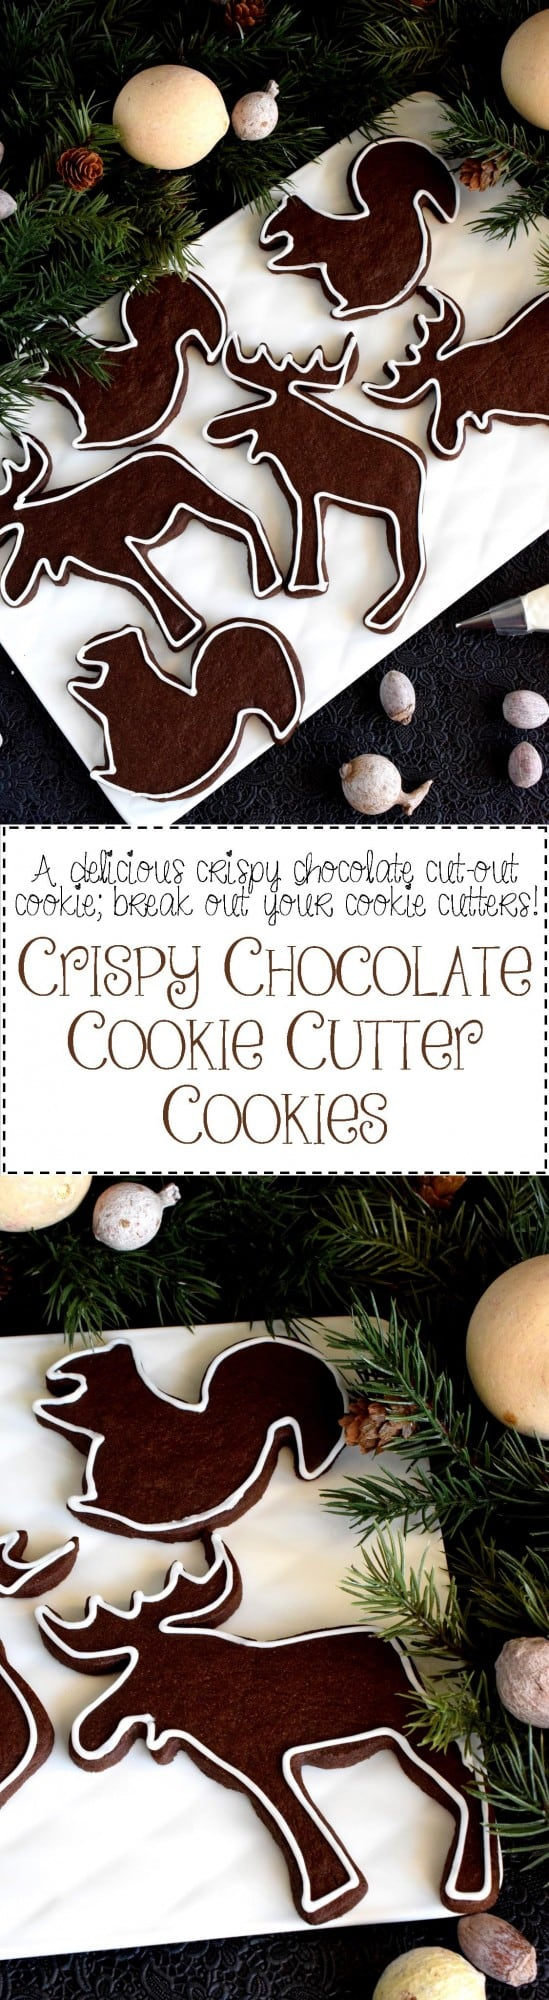 Crispy Chocolate Cookie Cutter Cookies